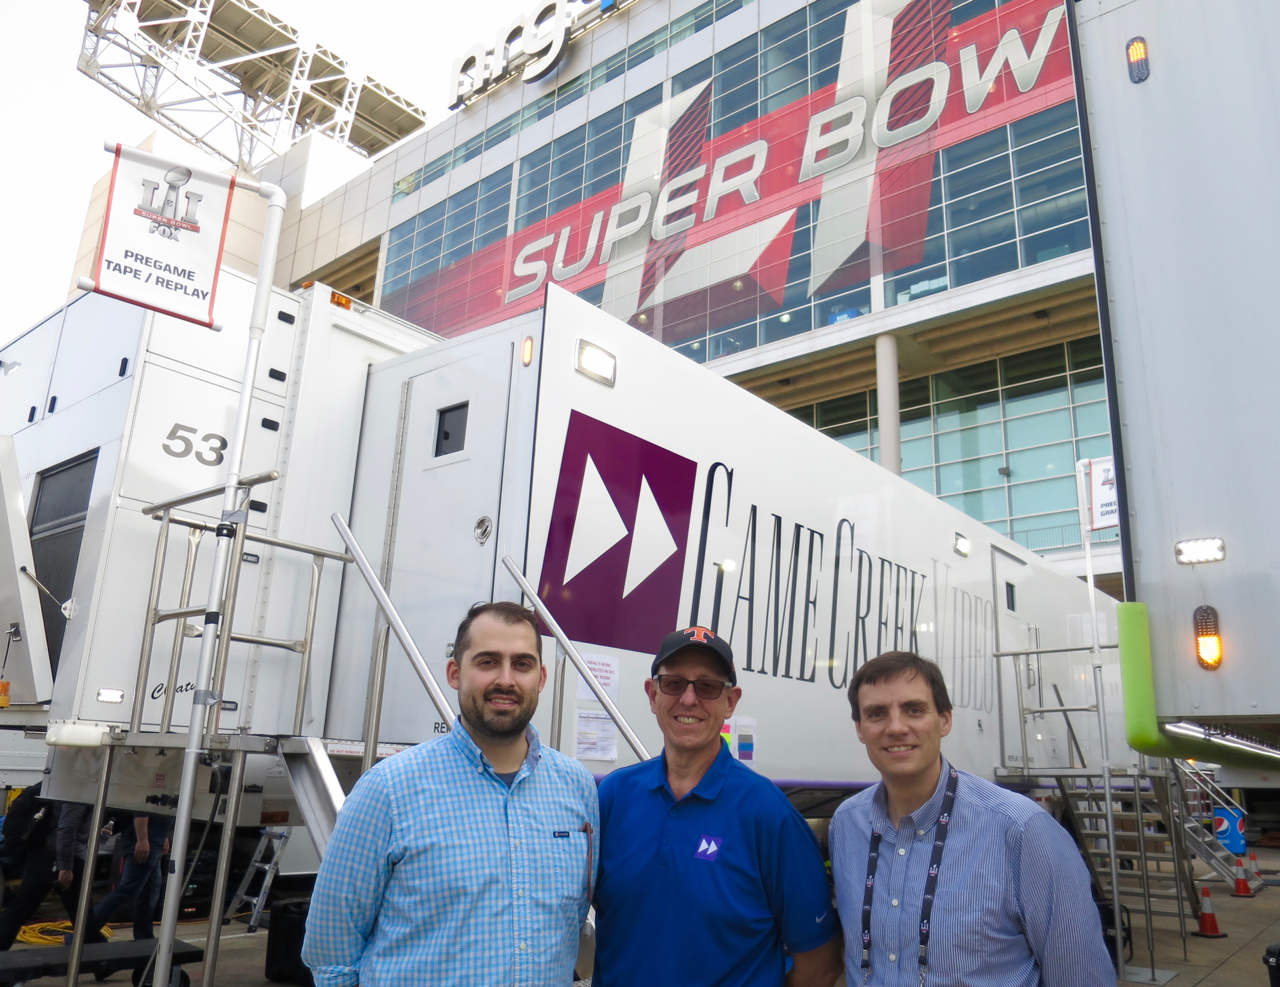 Game Creek's Keith Martin, Mike Copeland, and Jason Taubman on site at Super Bowl LI